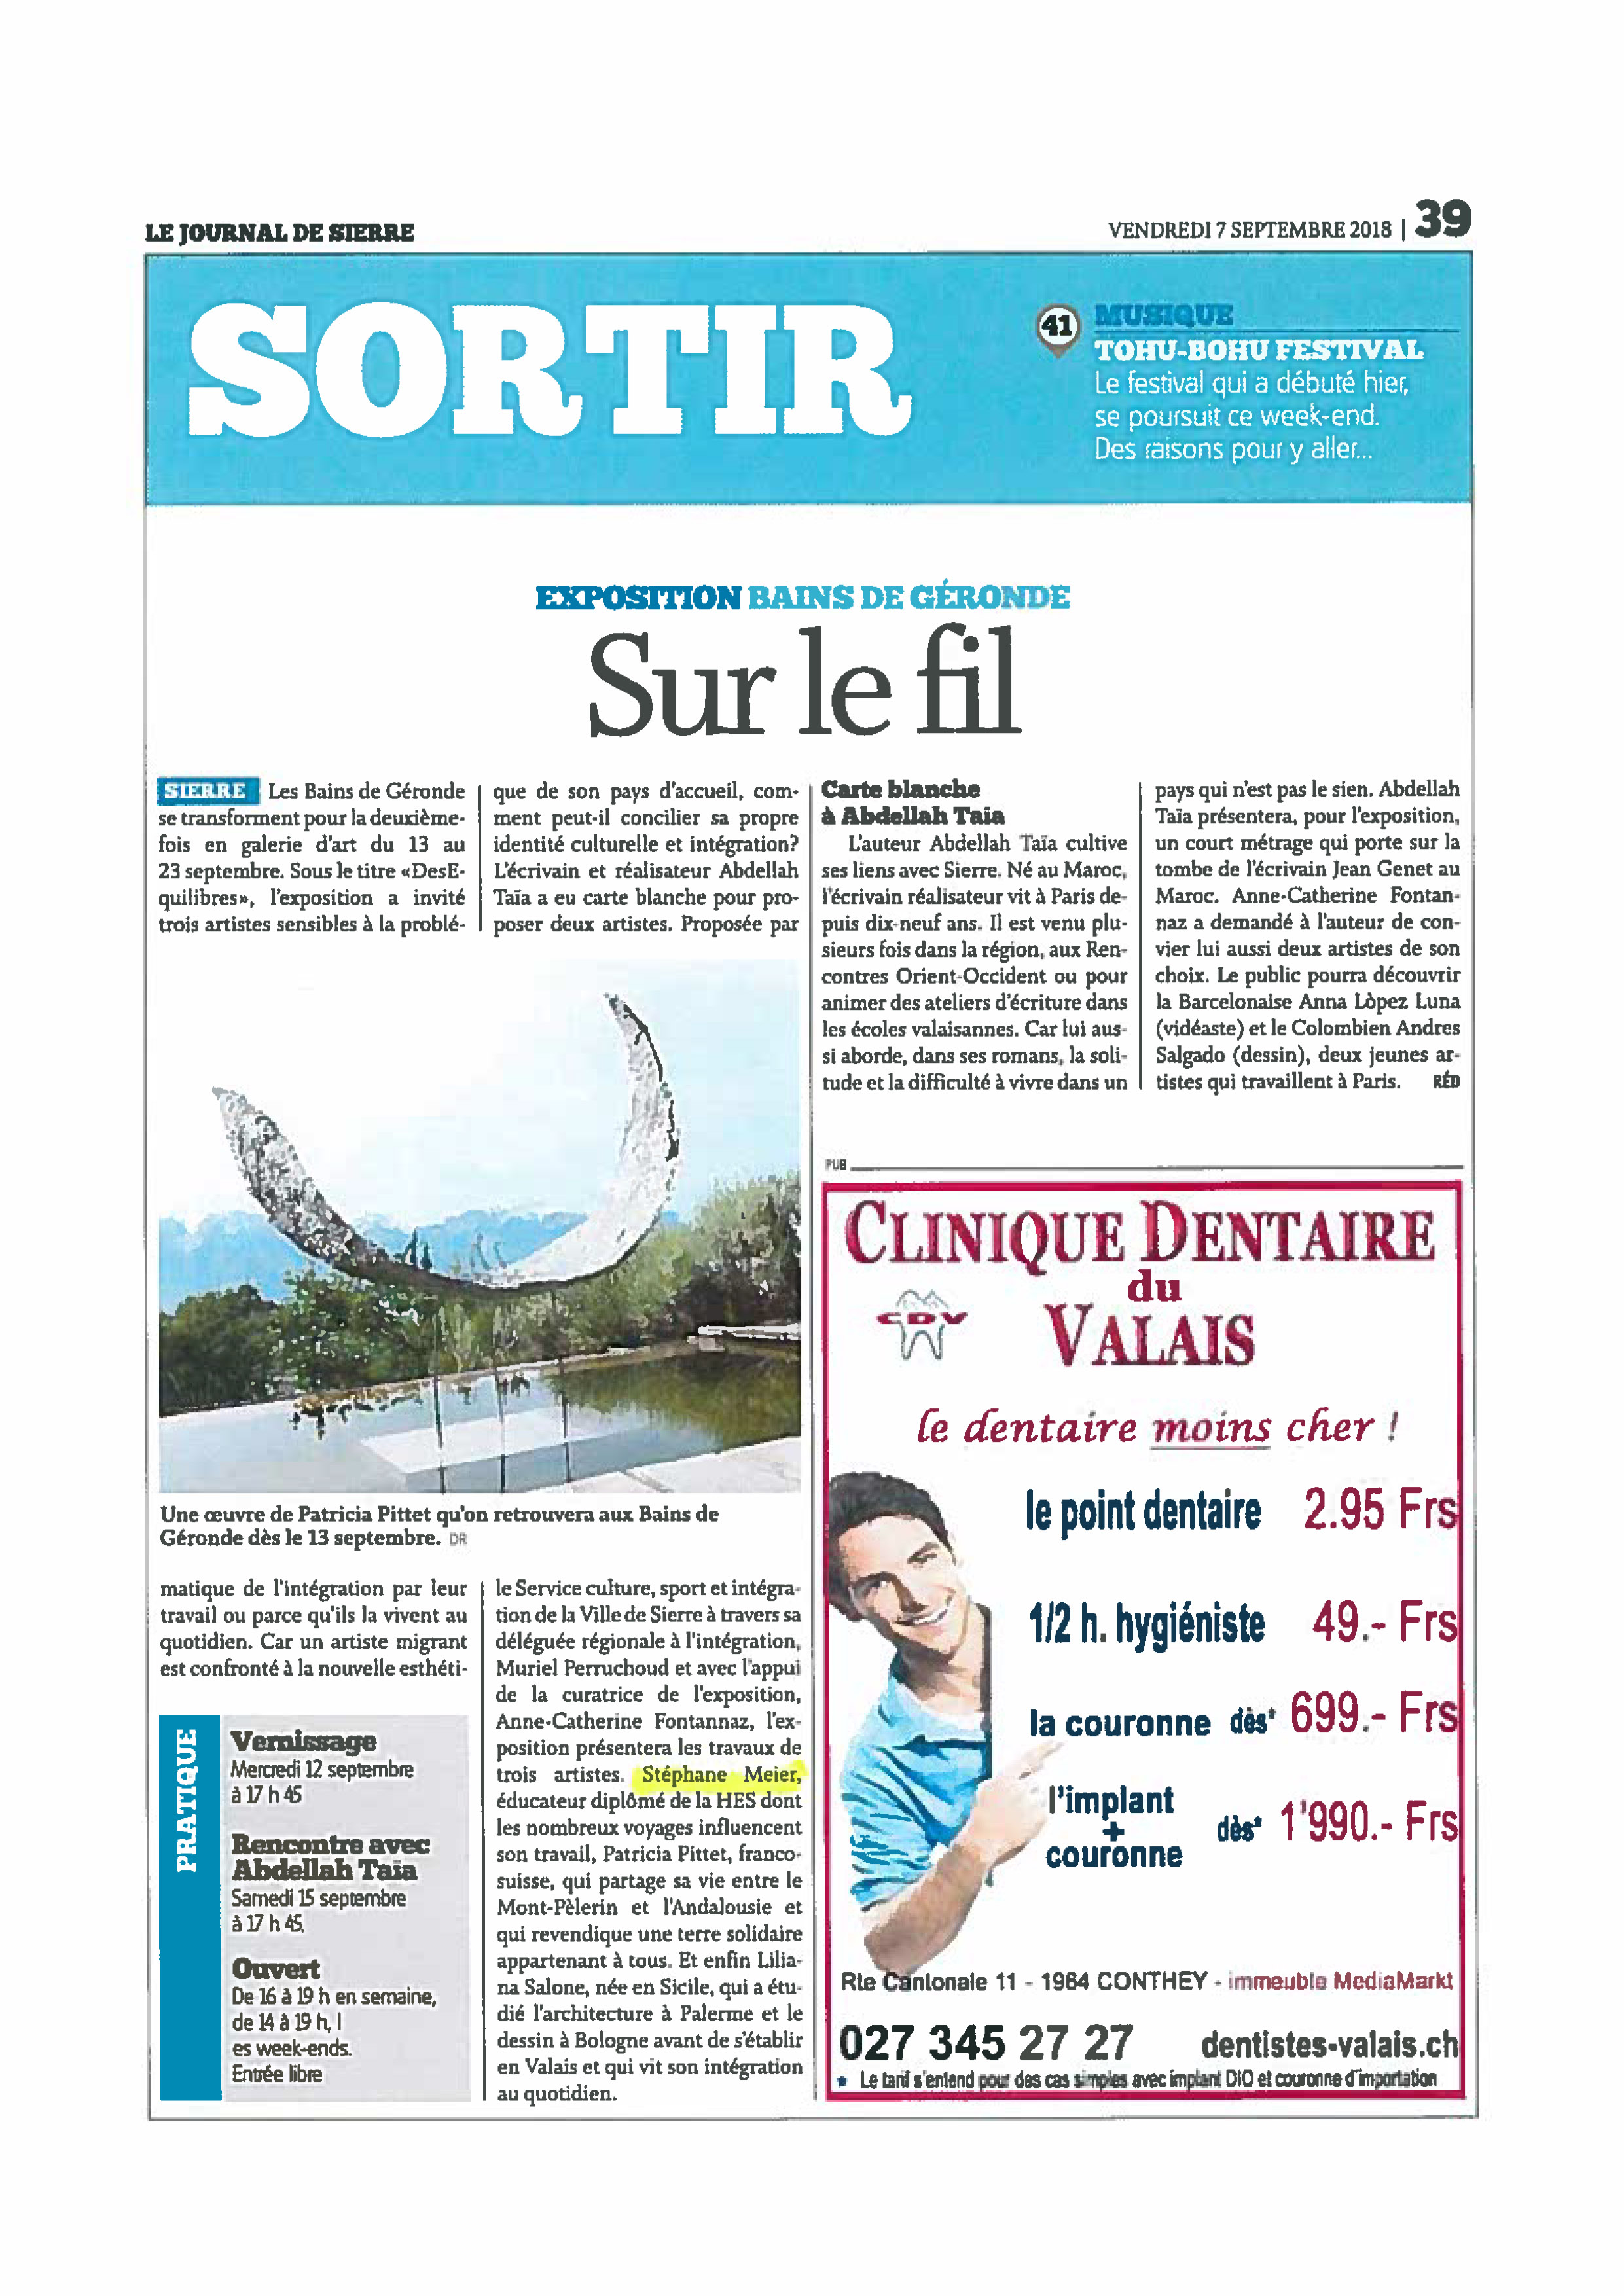 Article Journal de Sierre